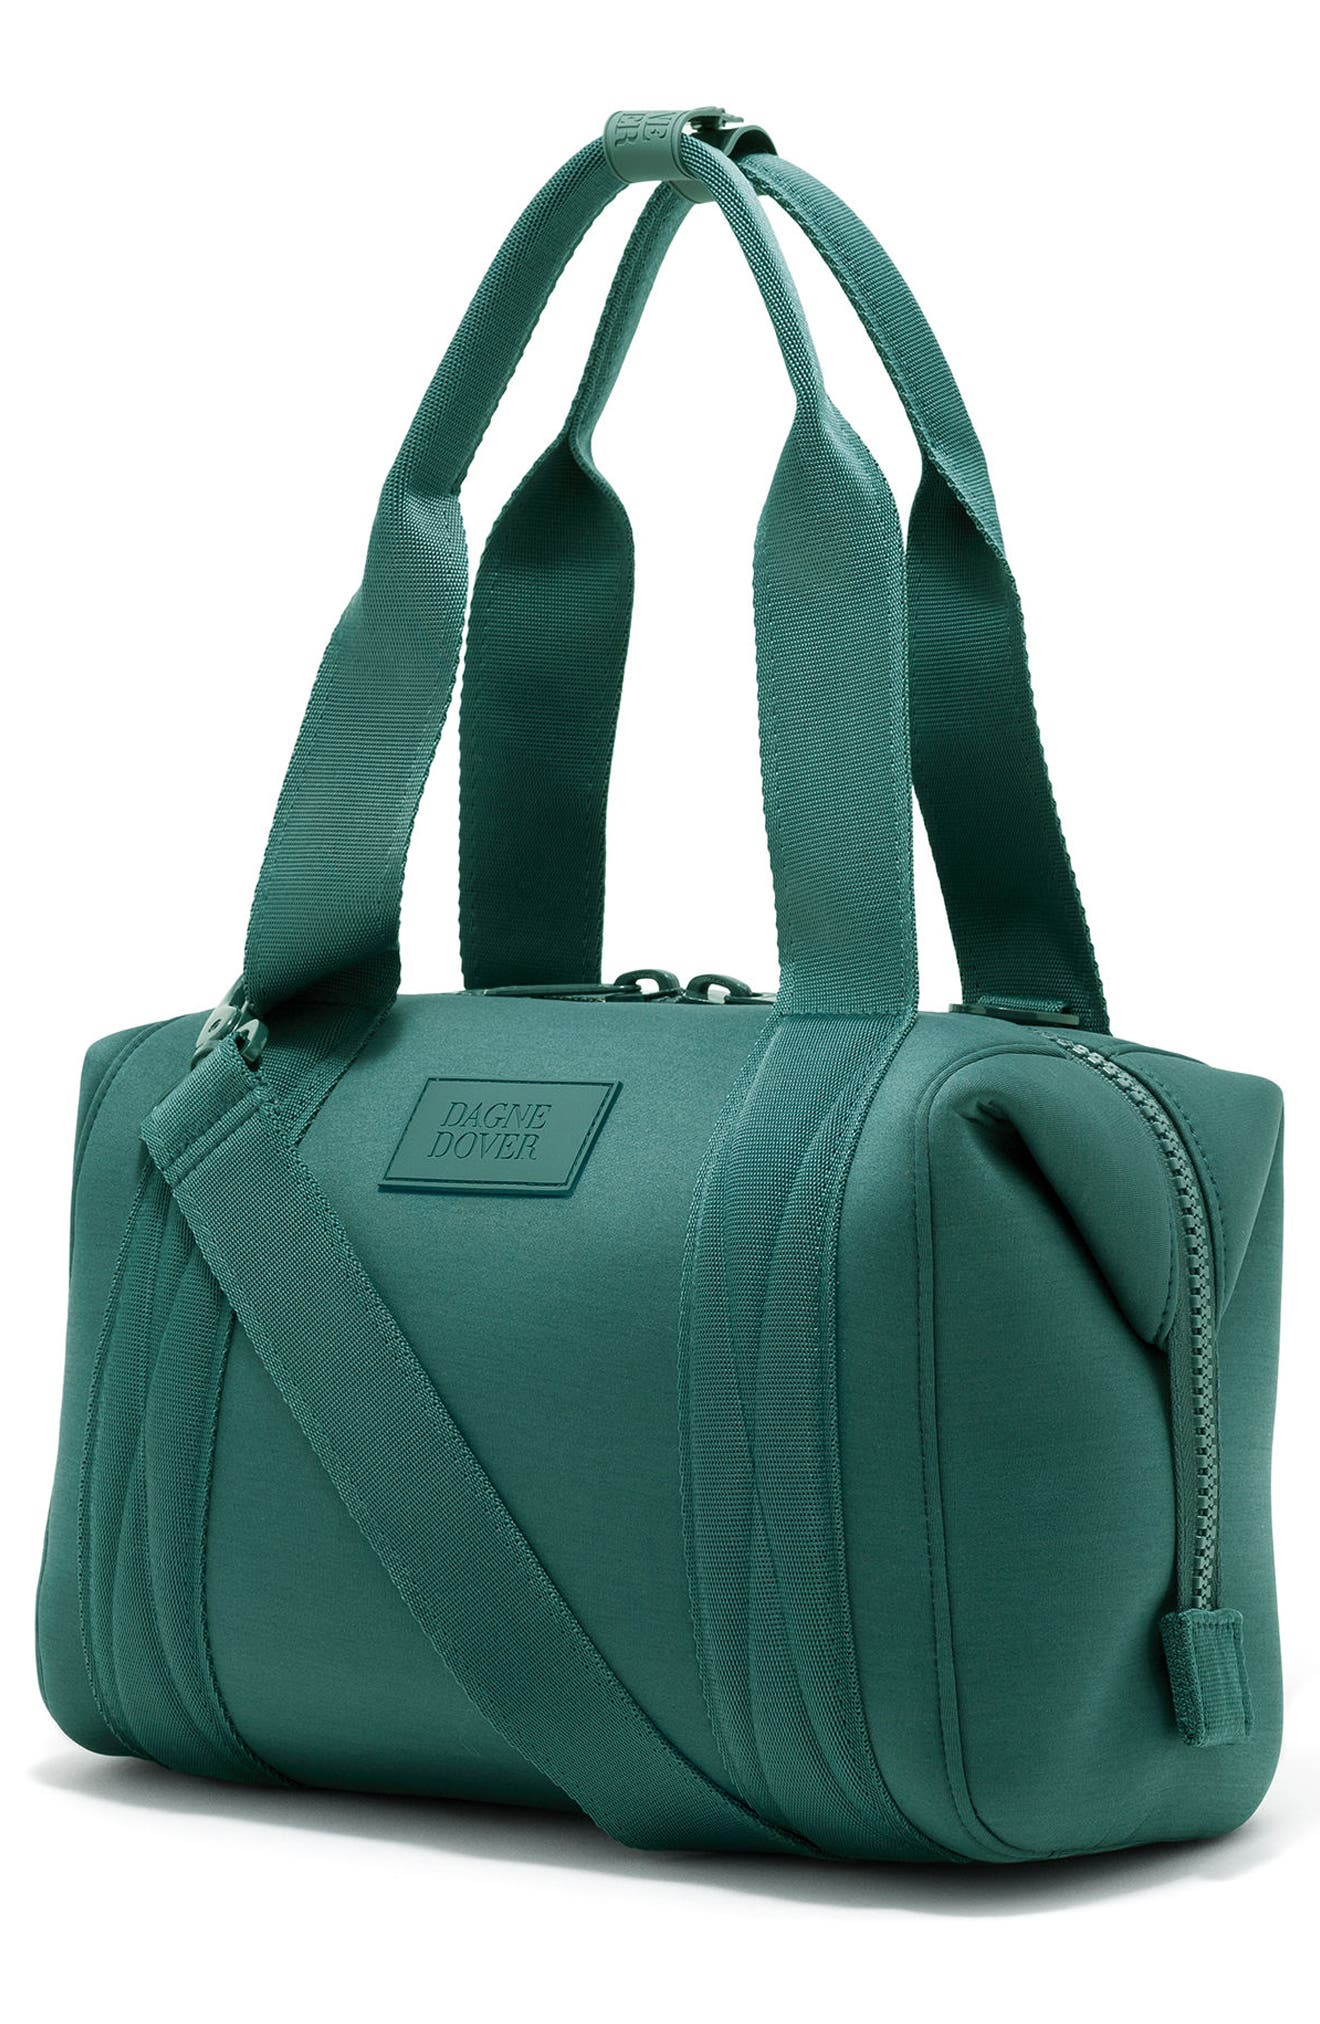 Alternate Image 1 Selected - Dagne Dover 365 Small Landon Carryall Duffel Bag